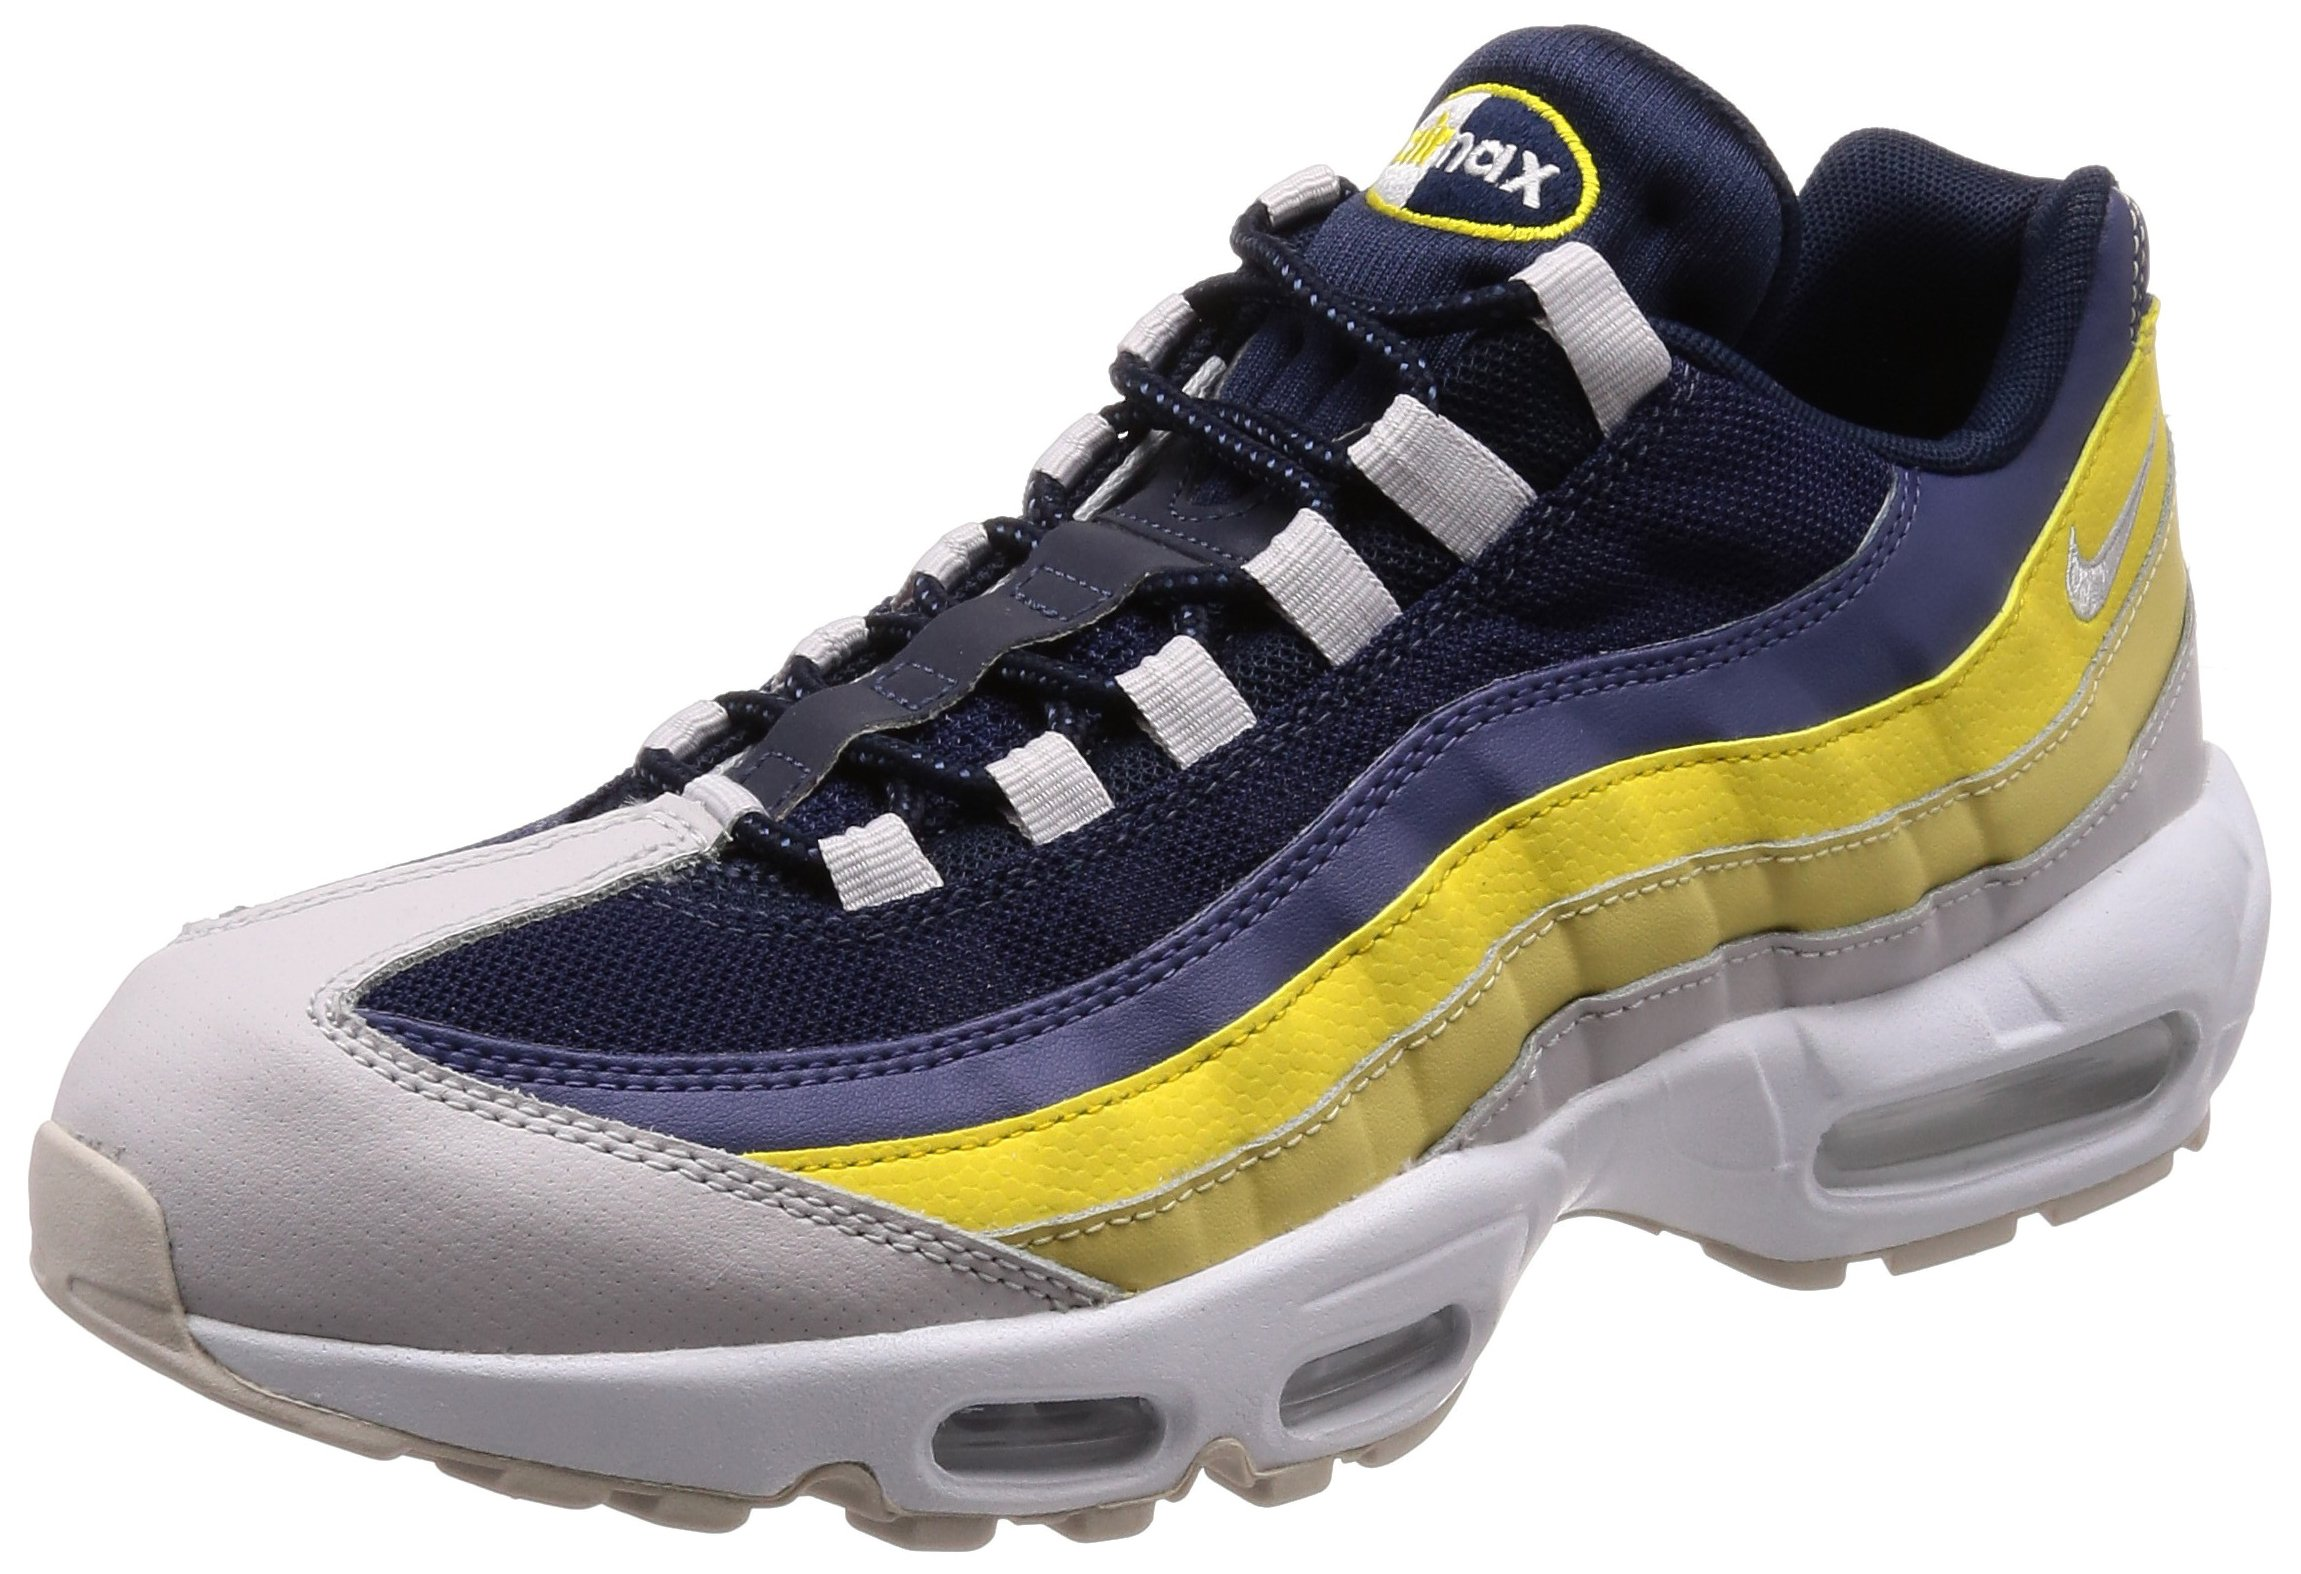 info for 7c98a 44e94 Galleon - NIKE Air Max 95 Essential Mens 749766-107 Size 7.5